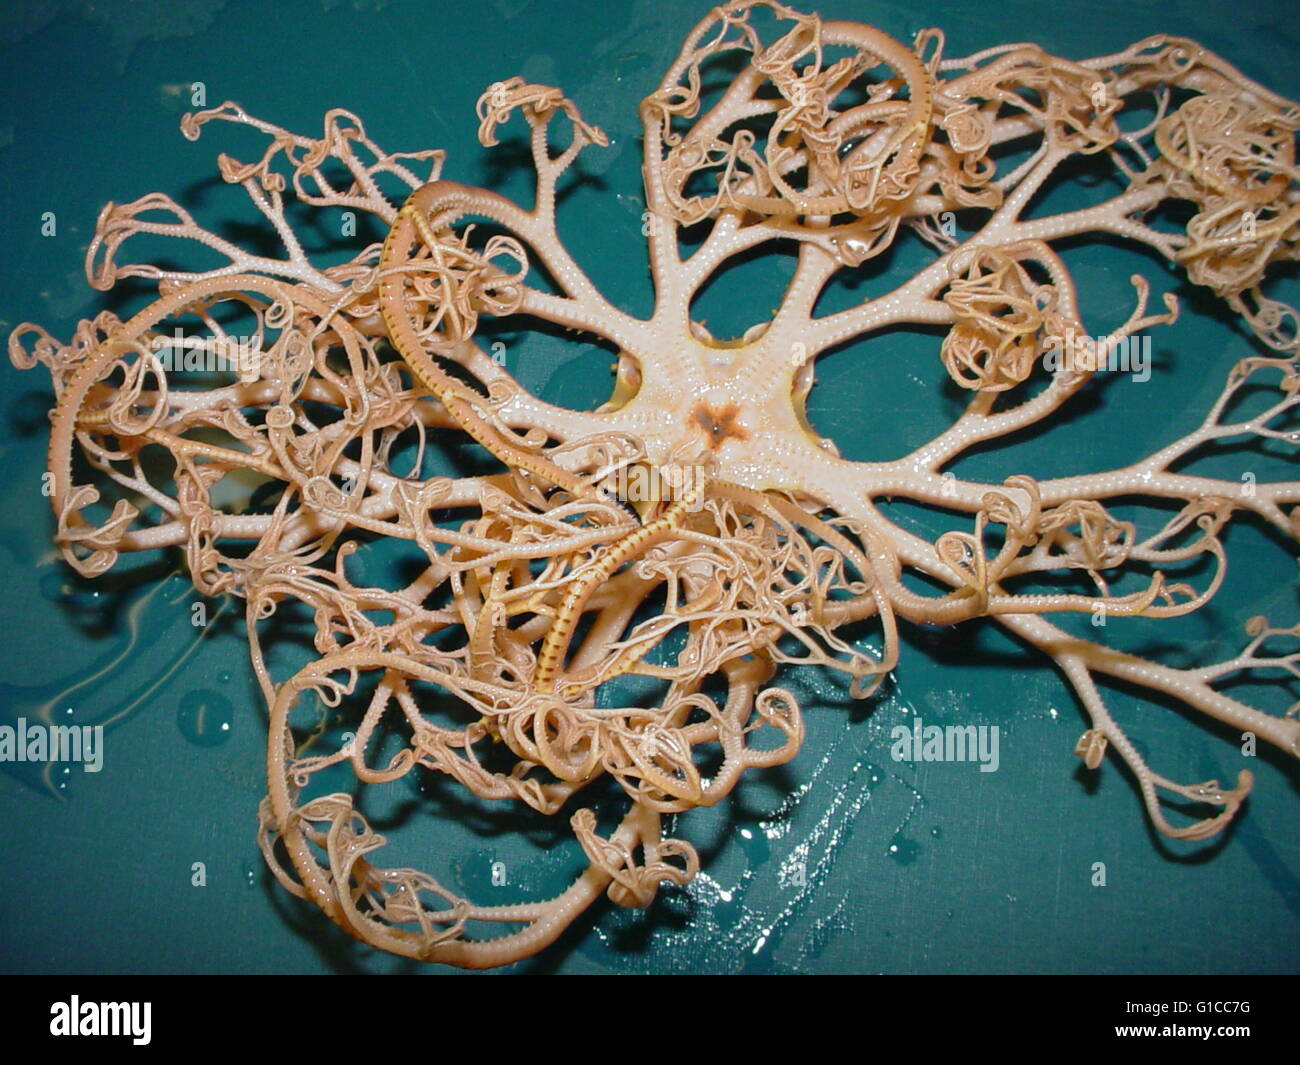 Basket Star from the Charleston Bump Expedition 2003. - Stock Image